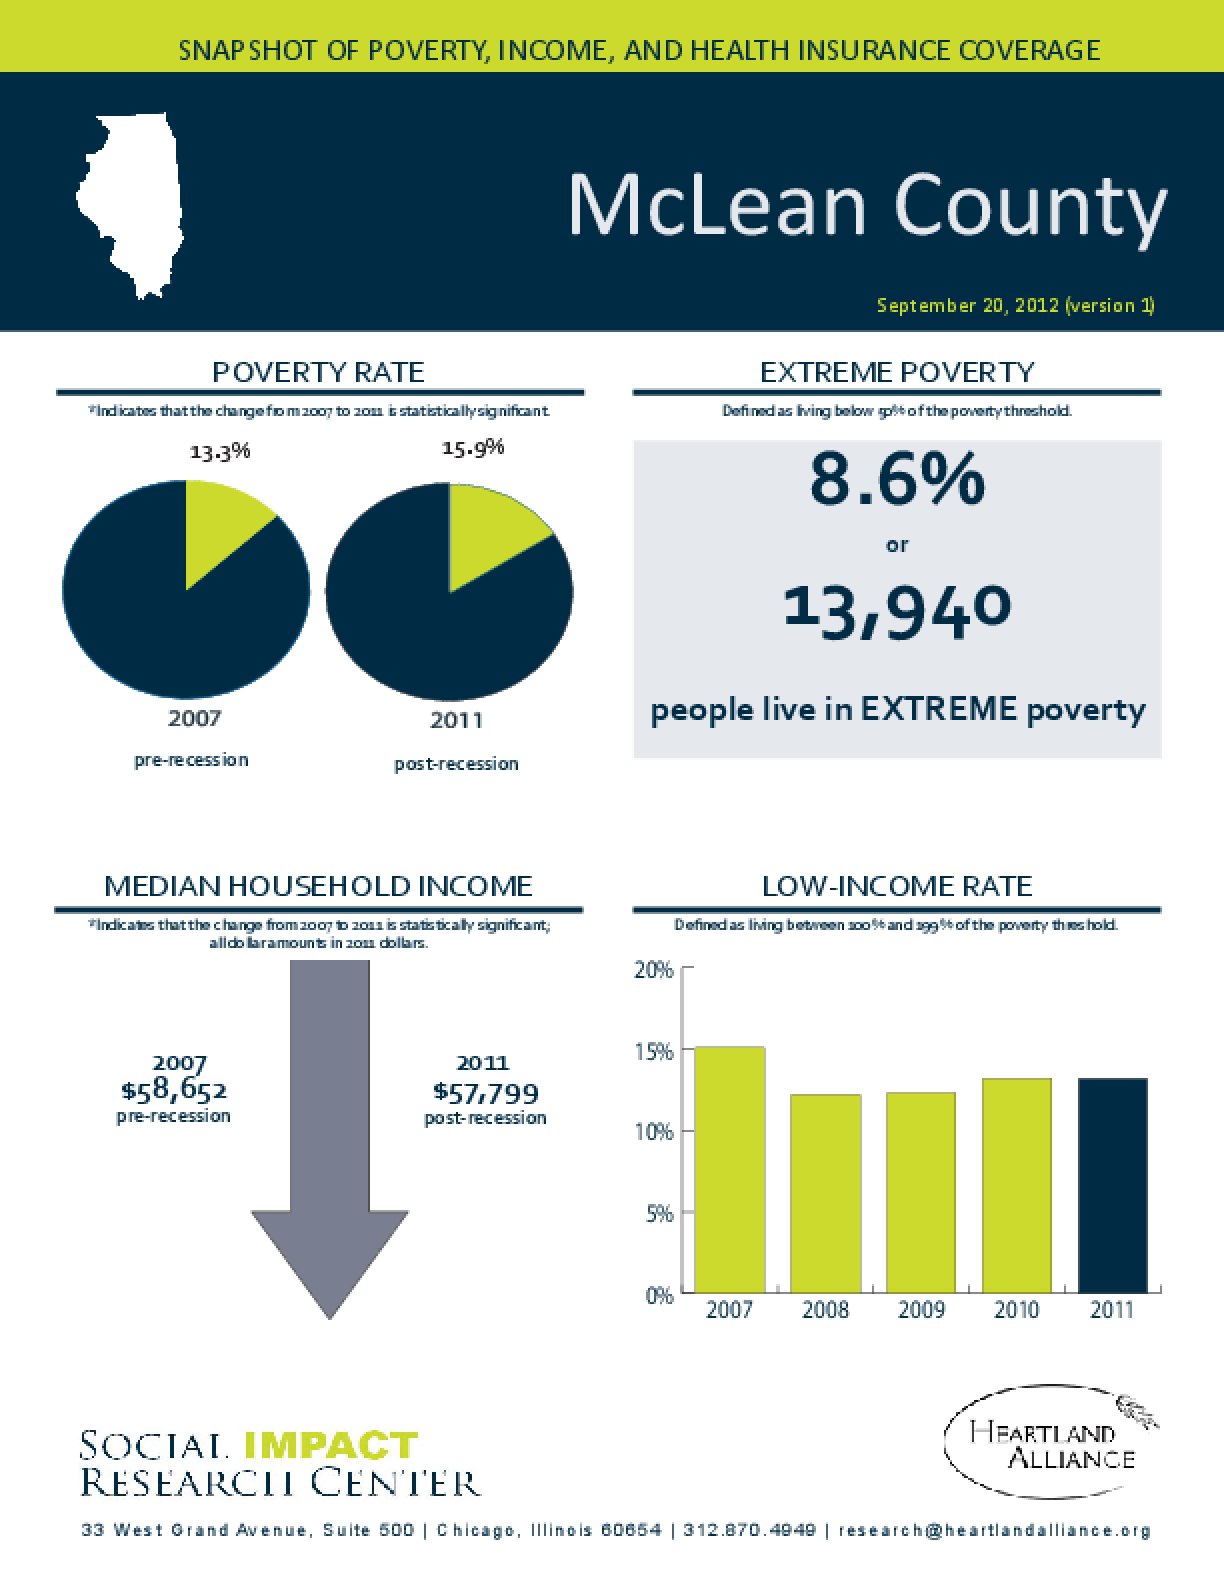 McLean County: Snapshot of Poverty, Income, and Health Insurance Coverage - 2011